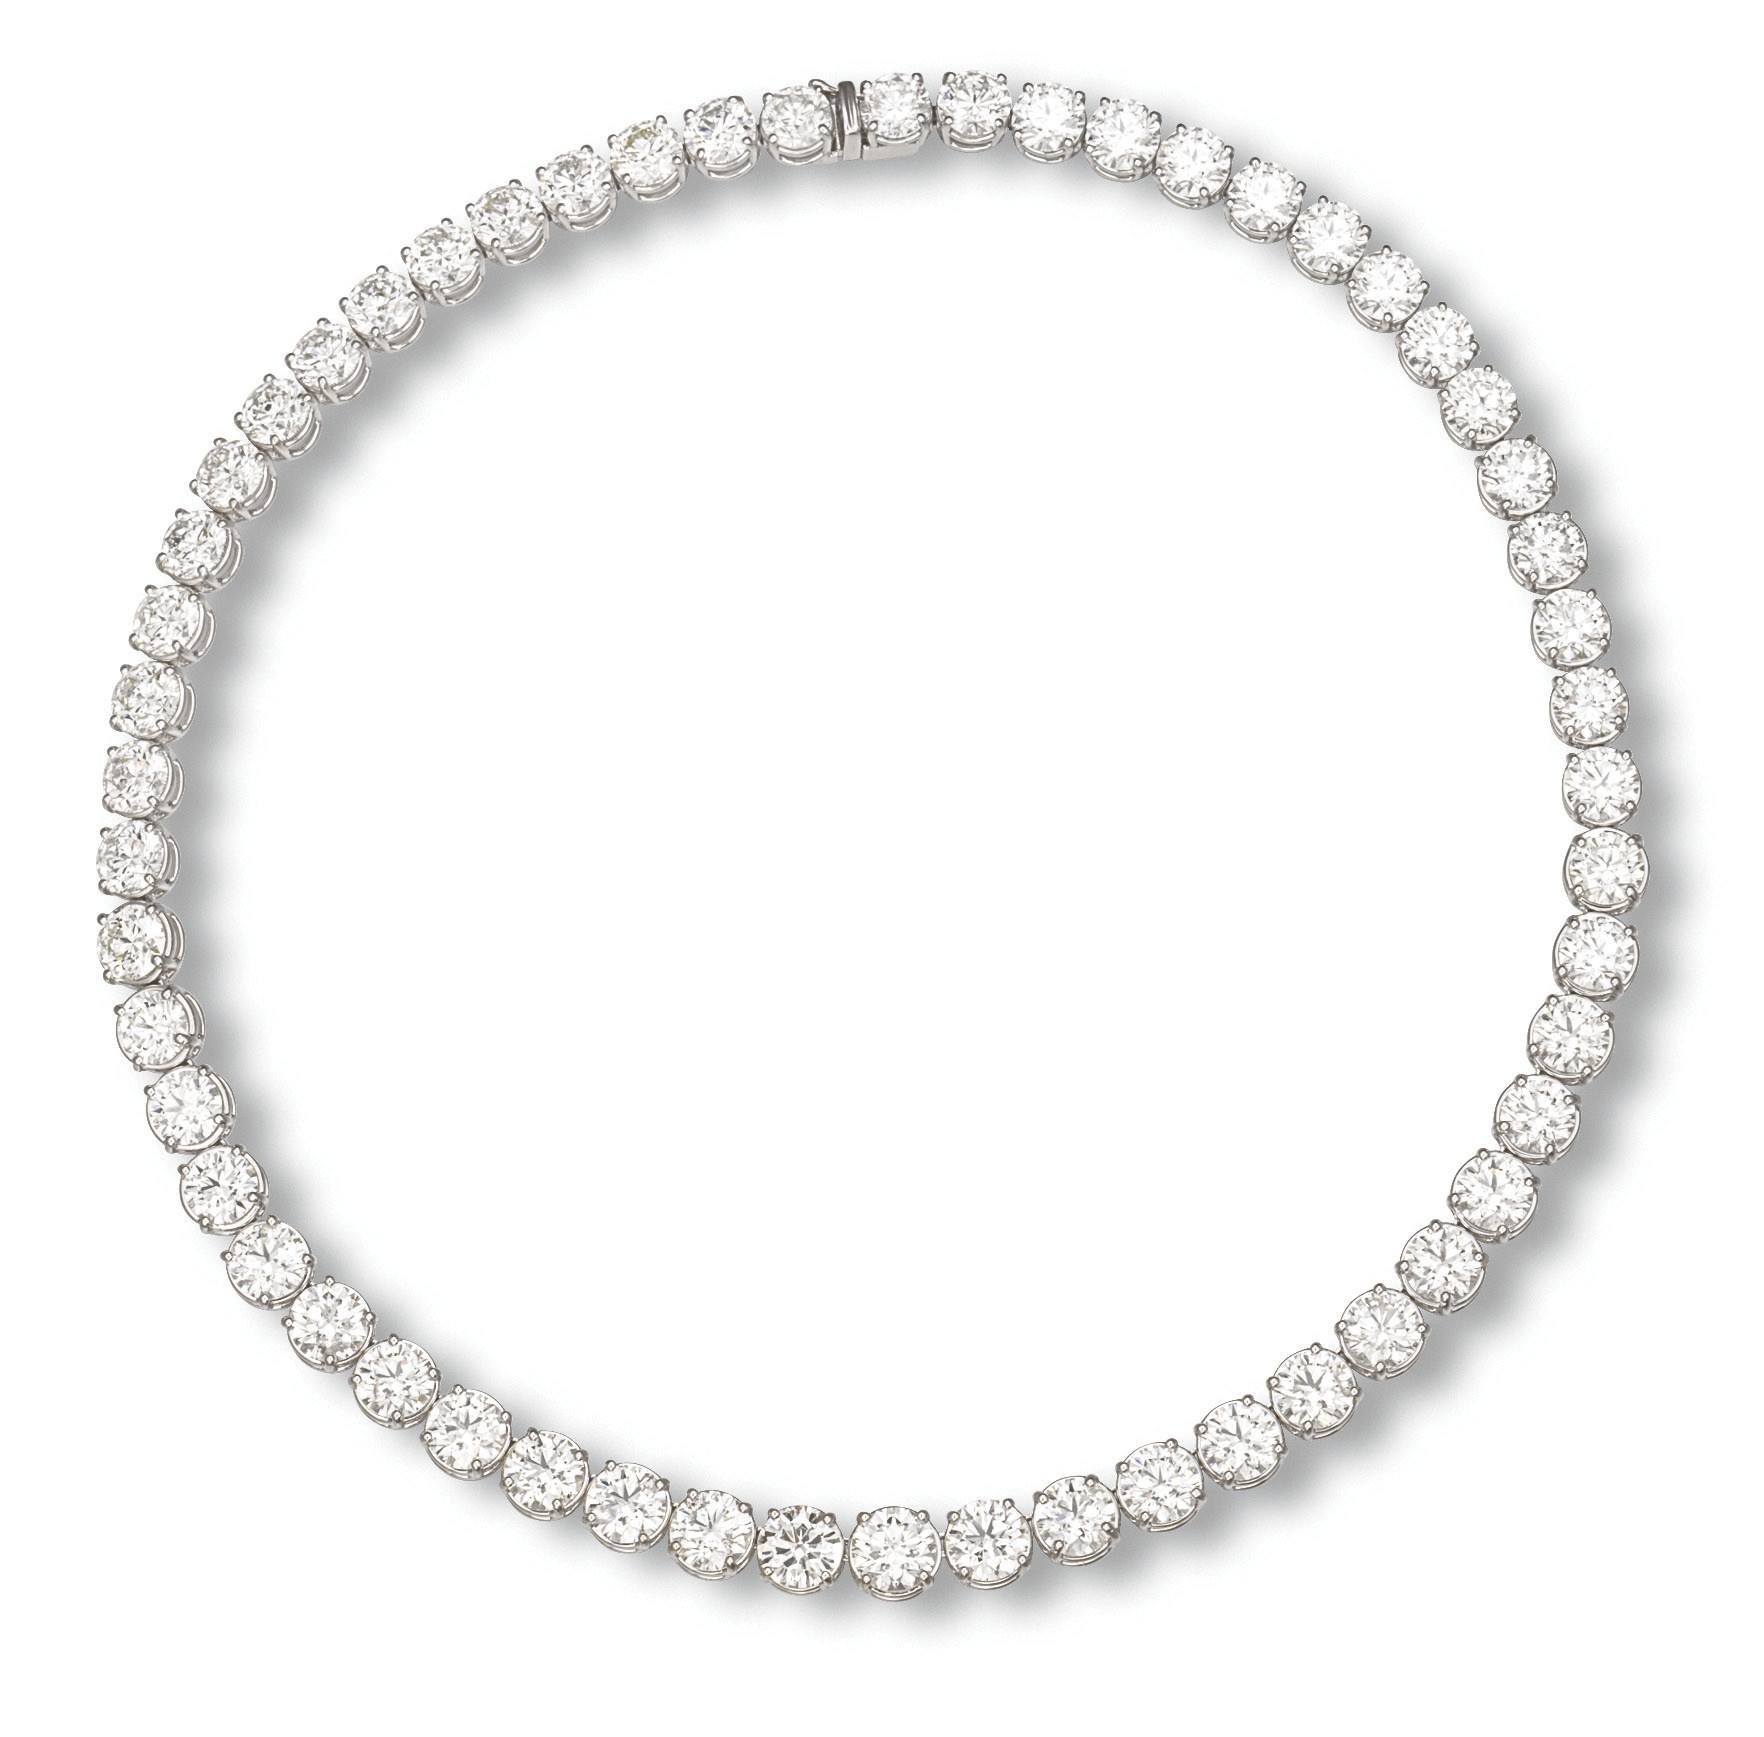 A DIAMOND RIVIERÈ NECKLACE